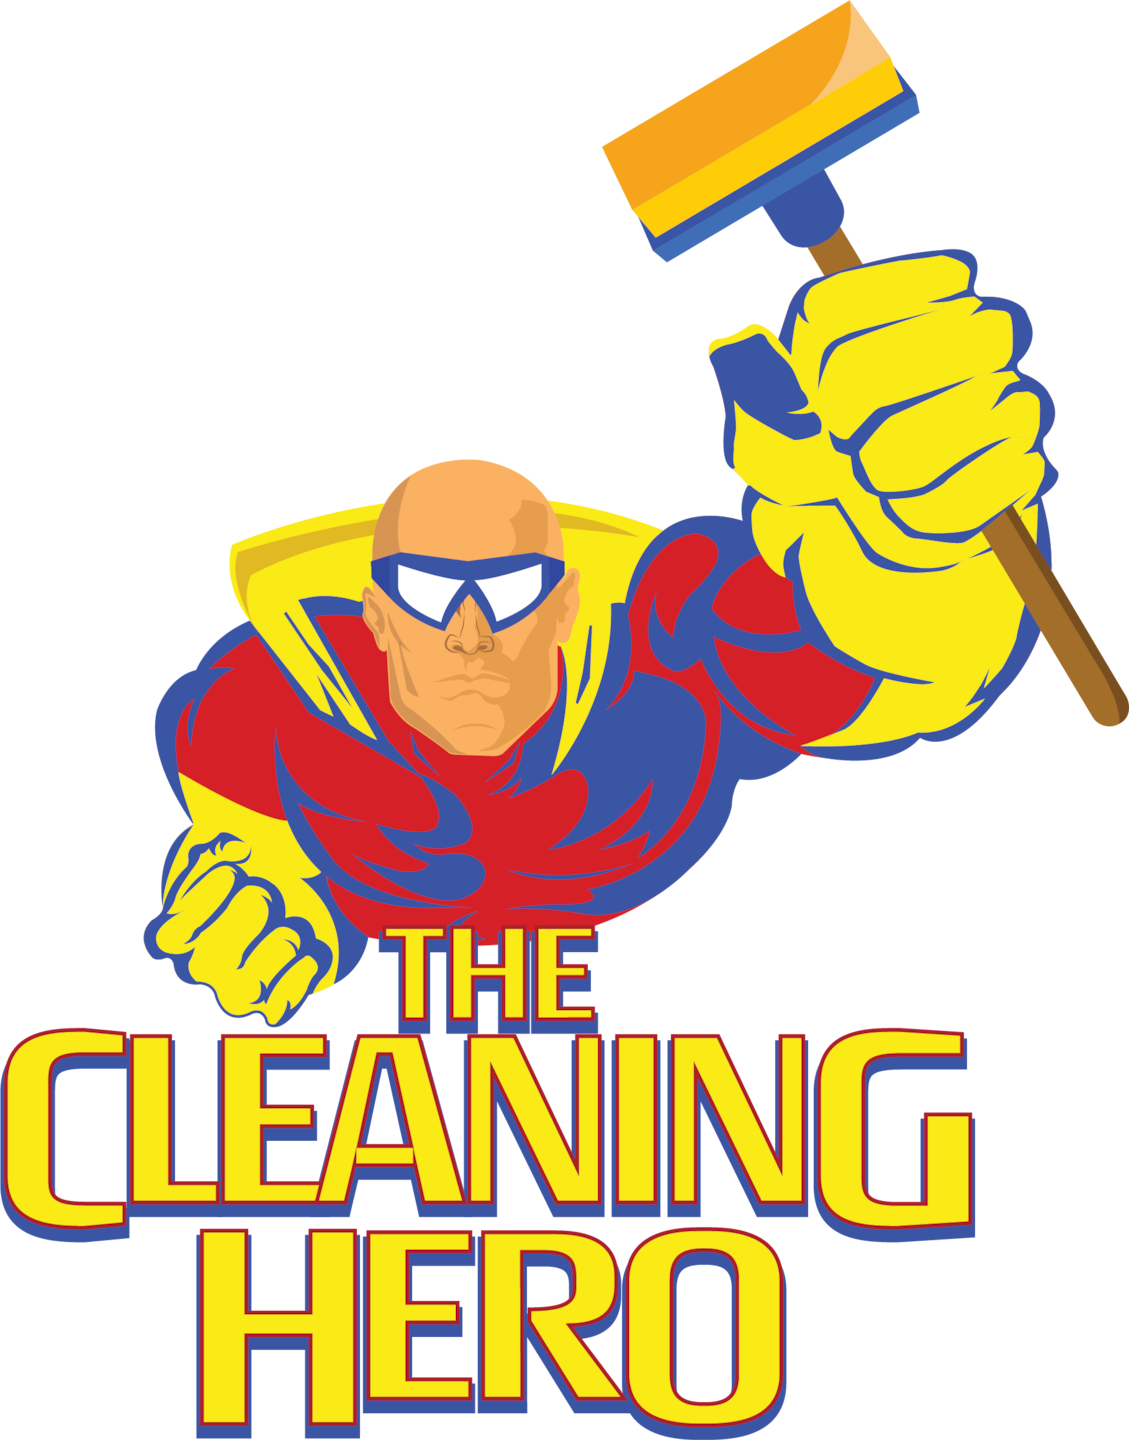 The Cleaning Hero